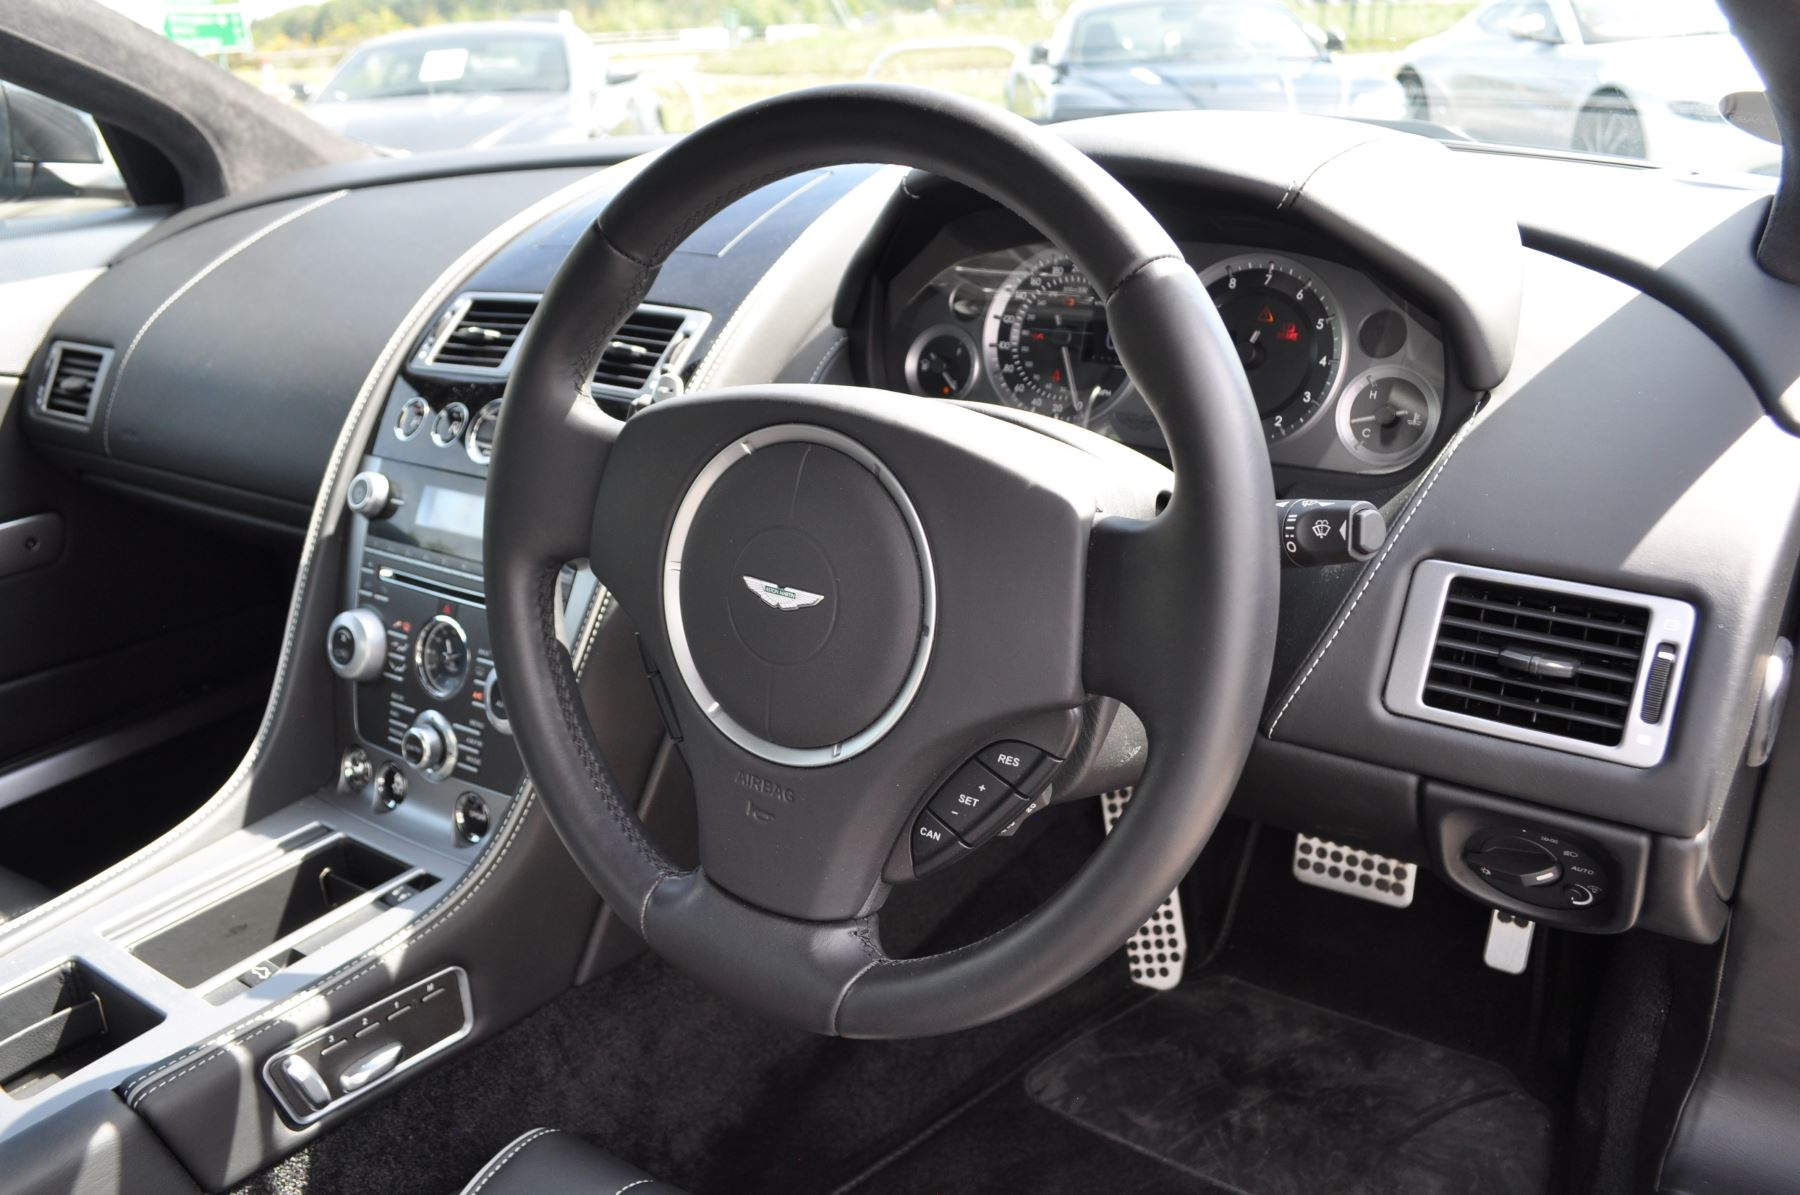 Aston Martin DB9 V12 2dr Touchtronic image 24